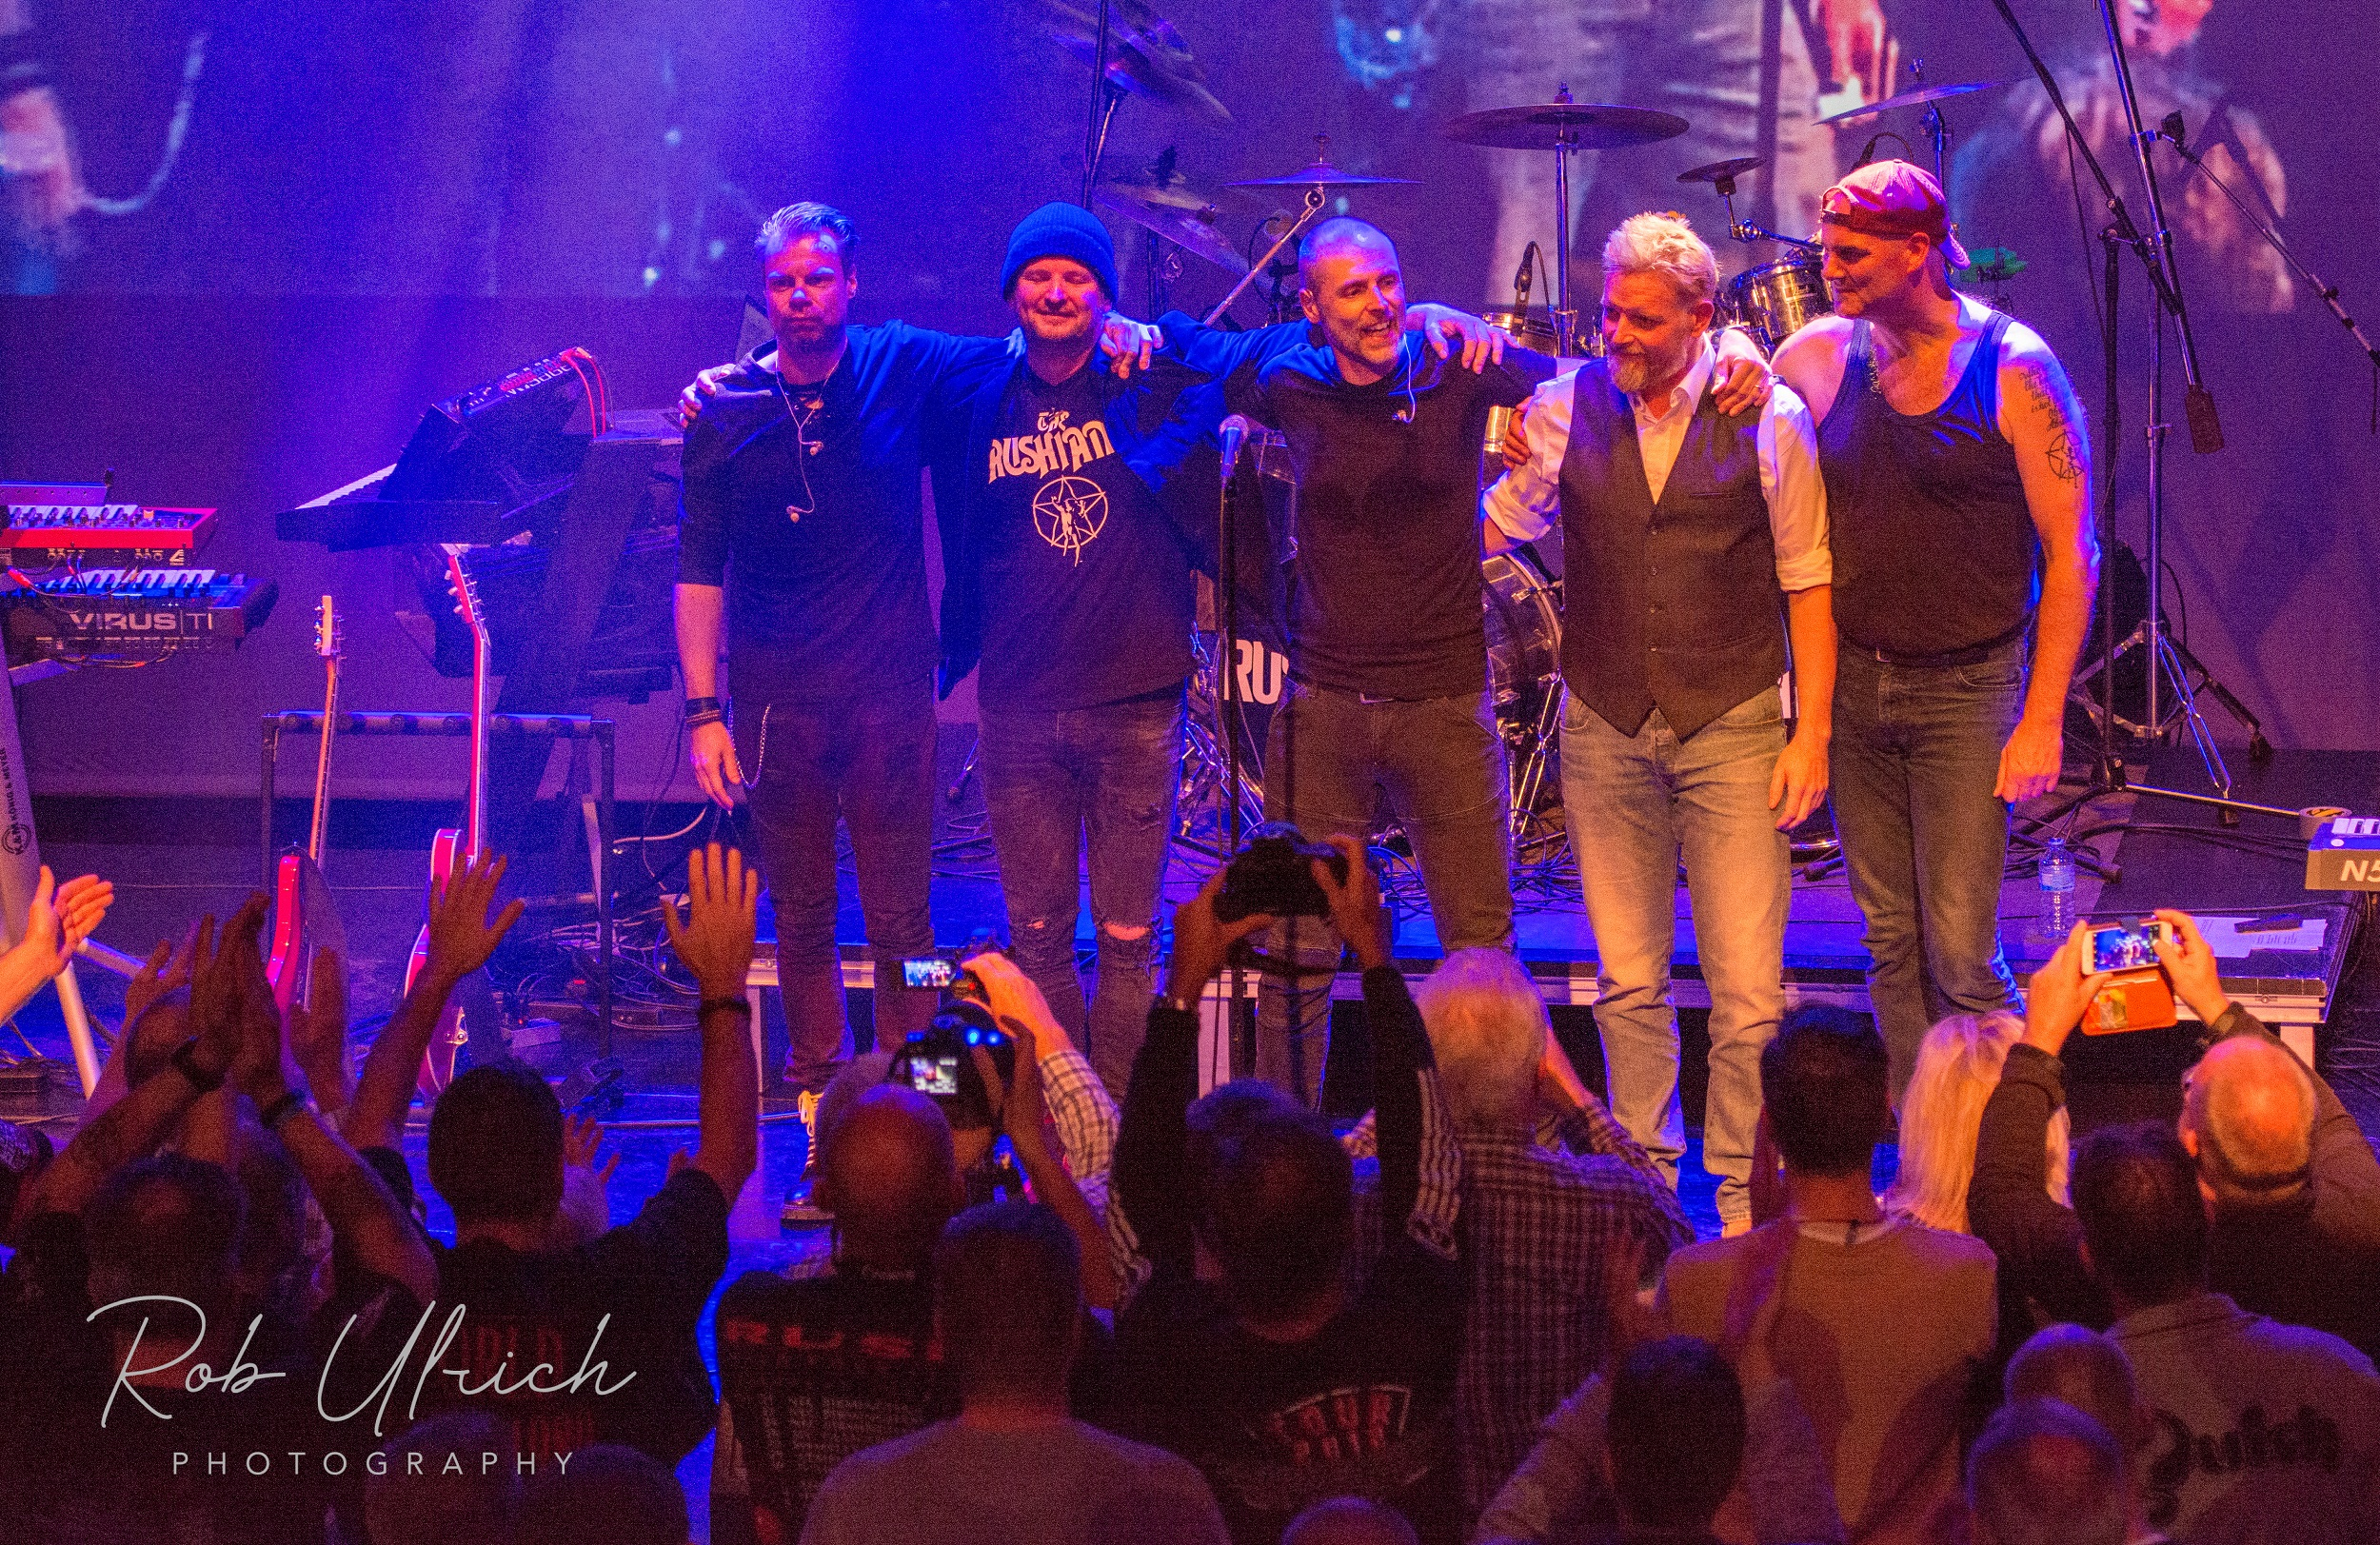 Rush Fan Event 2018 - This year's rush fan event was held in the Kulturhus in Borne. A magnificent day organized and visited by a large number of dedicated rush fans. The day started with a knowledge game about the history of Rush where great prizes could be won. The Dutch Funcraft was present outside. The Rushians open all registers. With a huge video screen, Red Barchetta, Camera Eye, Witch Hunt, Natural Sciense and others are accompanied with videos. We hope to see you all again next year !!